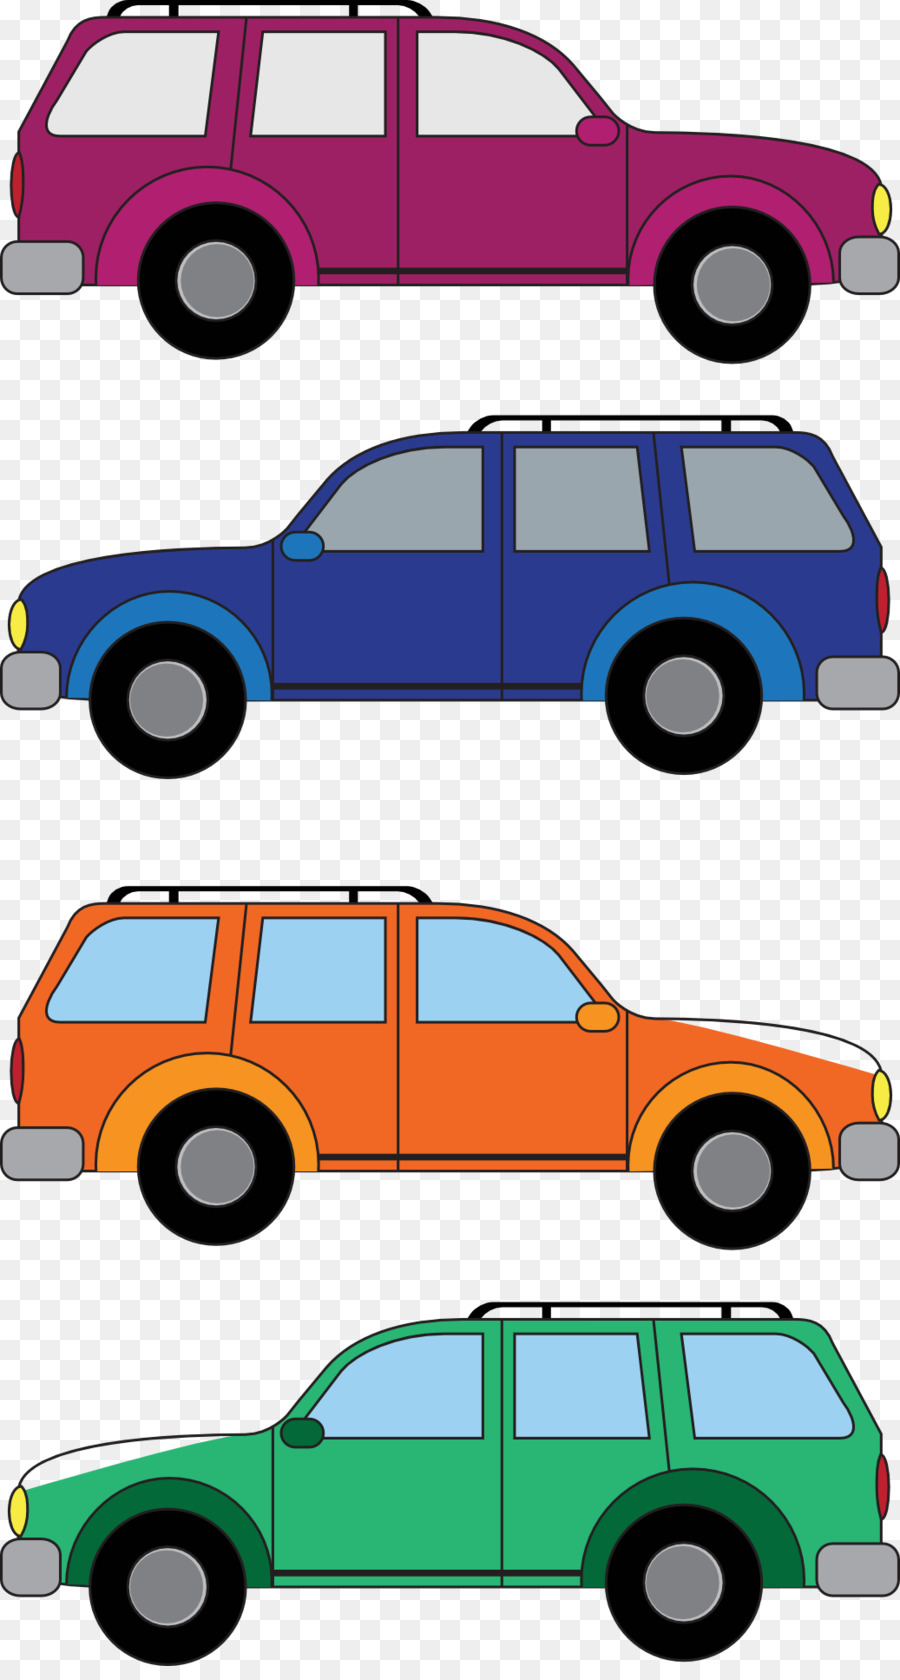 Car Cartoon Png : cartoon, Cartoon, Download, 1037*1920, Transparent, Download., CleanPNG, KissPNG